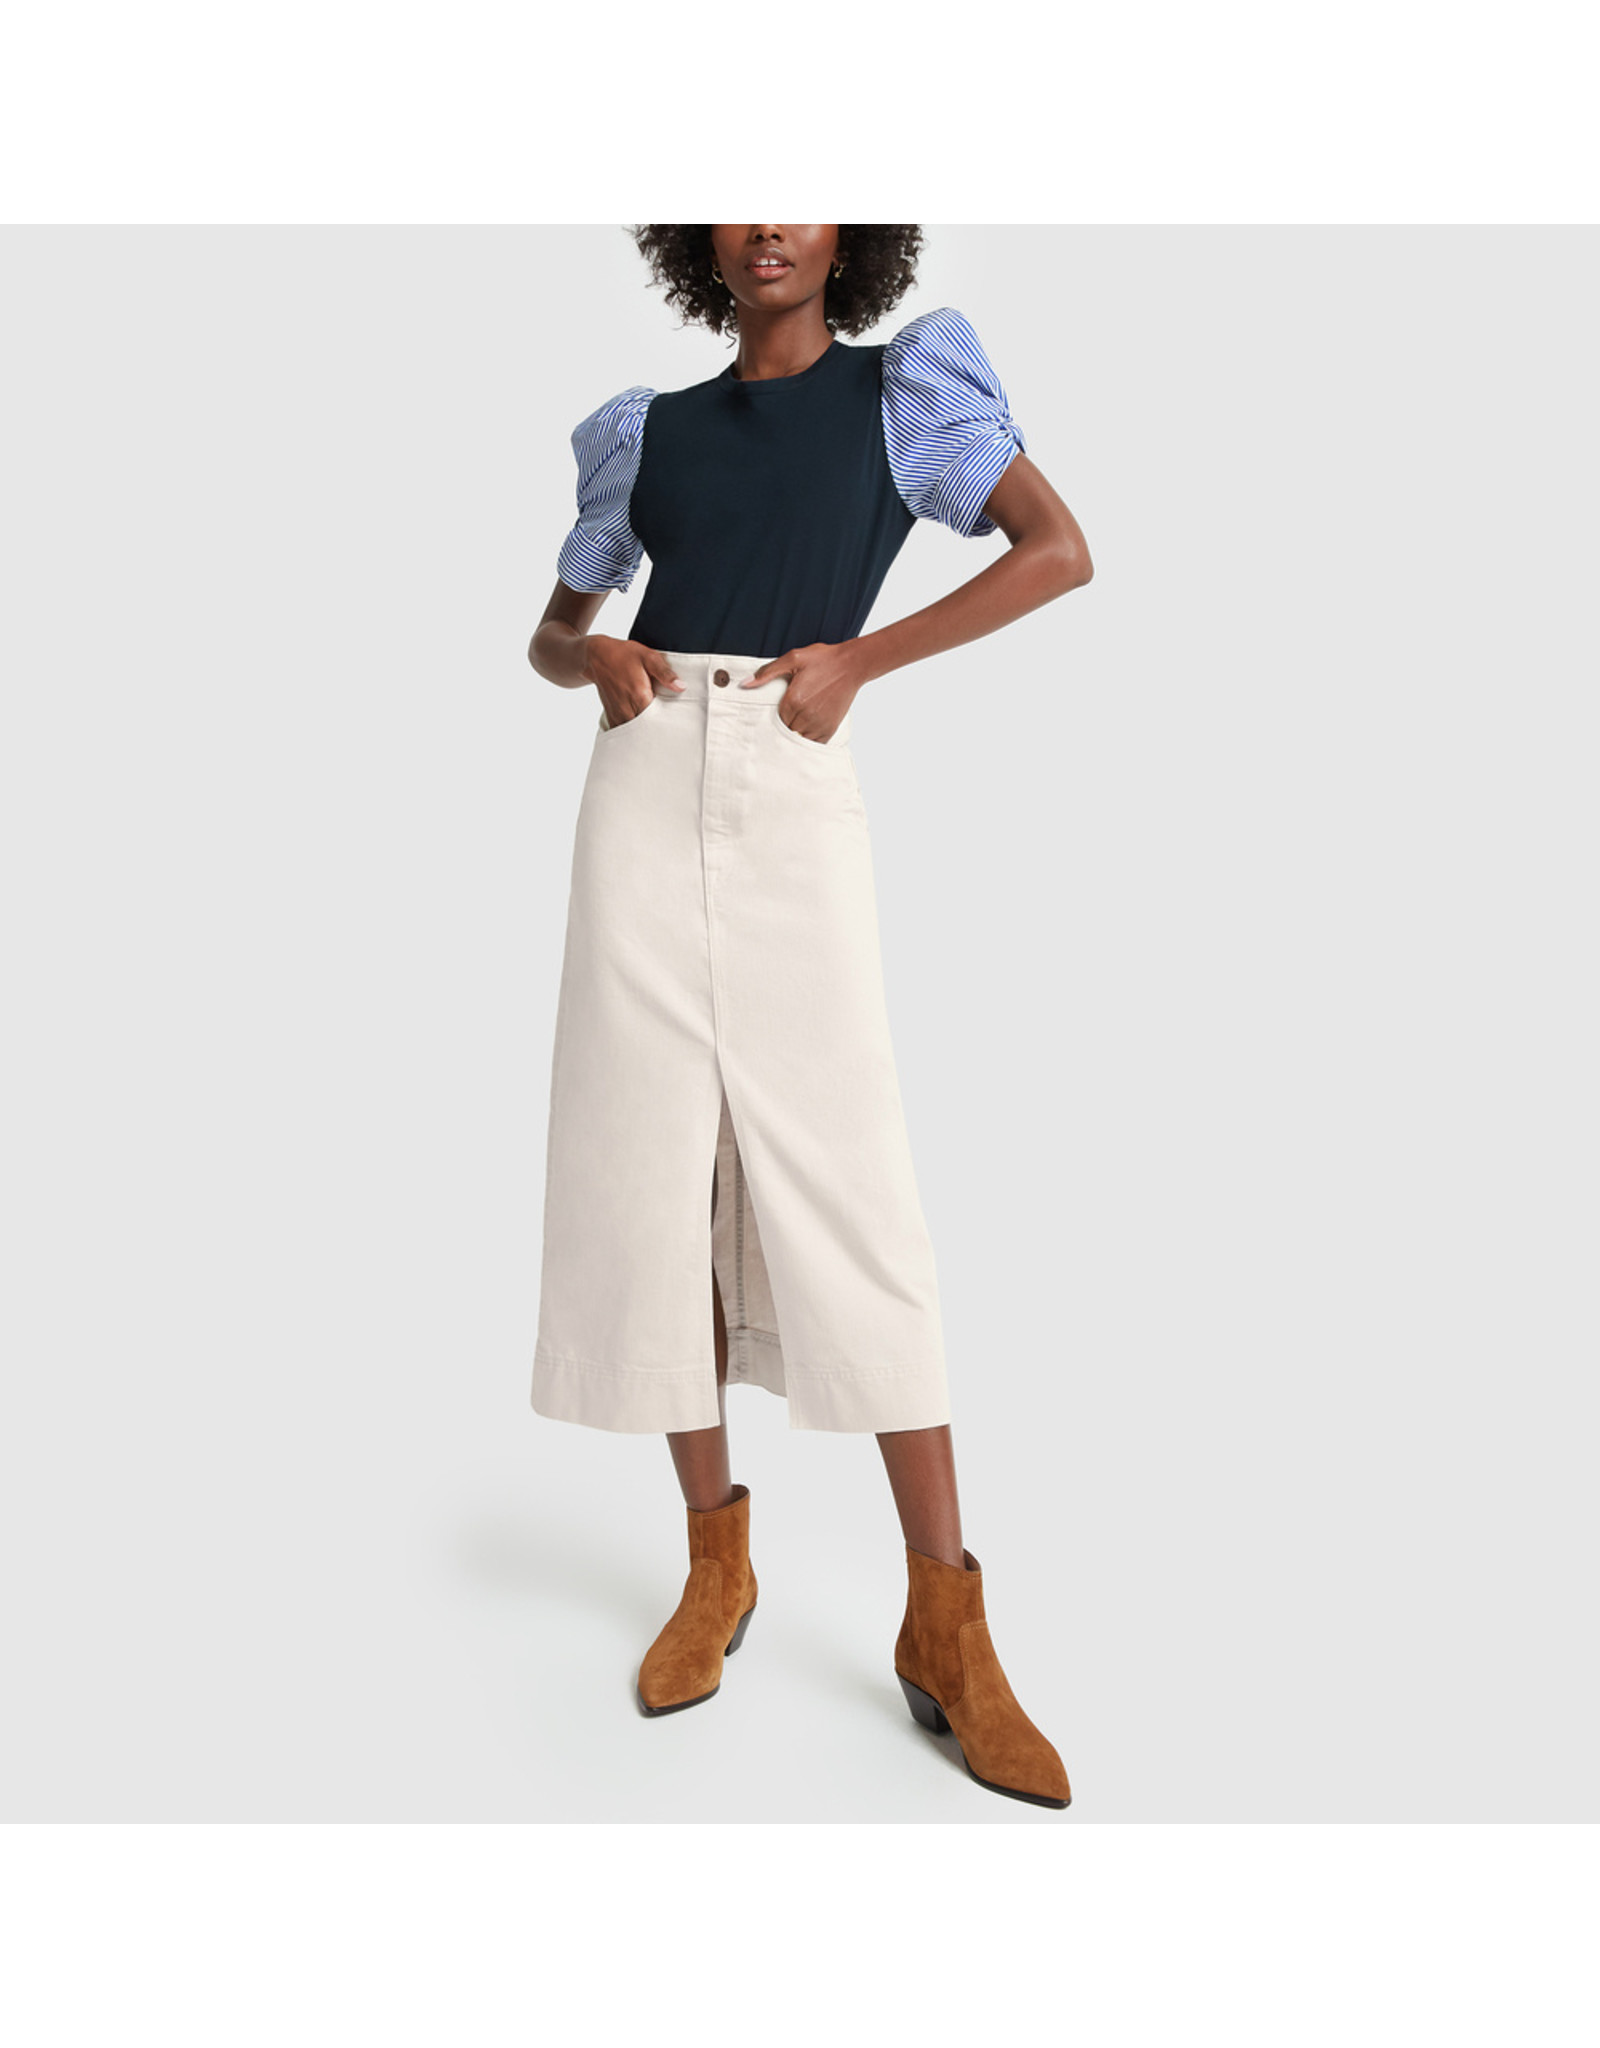 G. Label G. Label Yu Denim Pencil Skirt (Size: 26, Color: Natural)